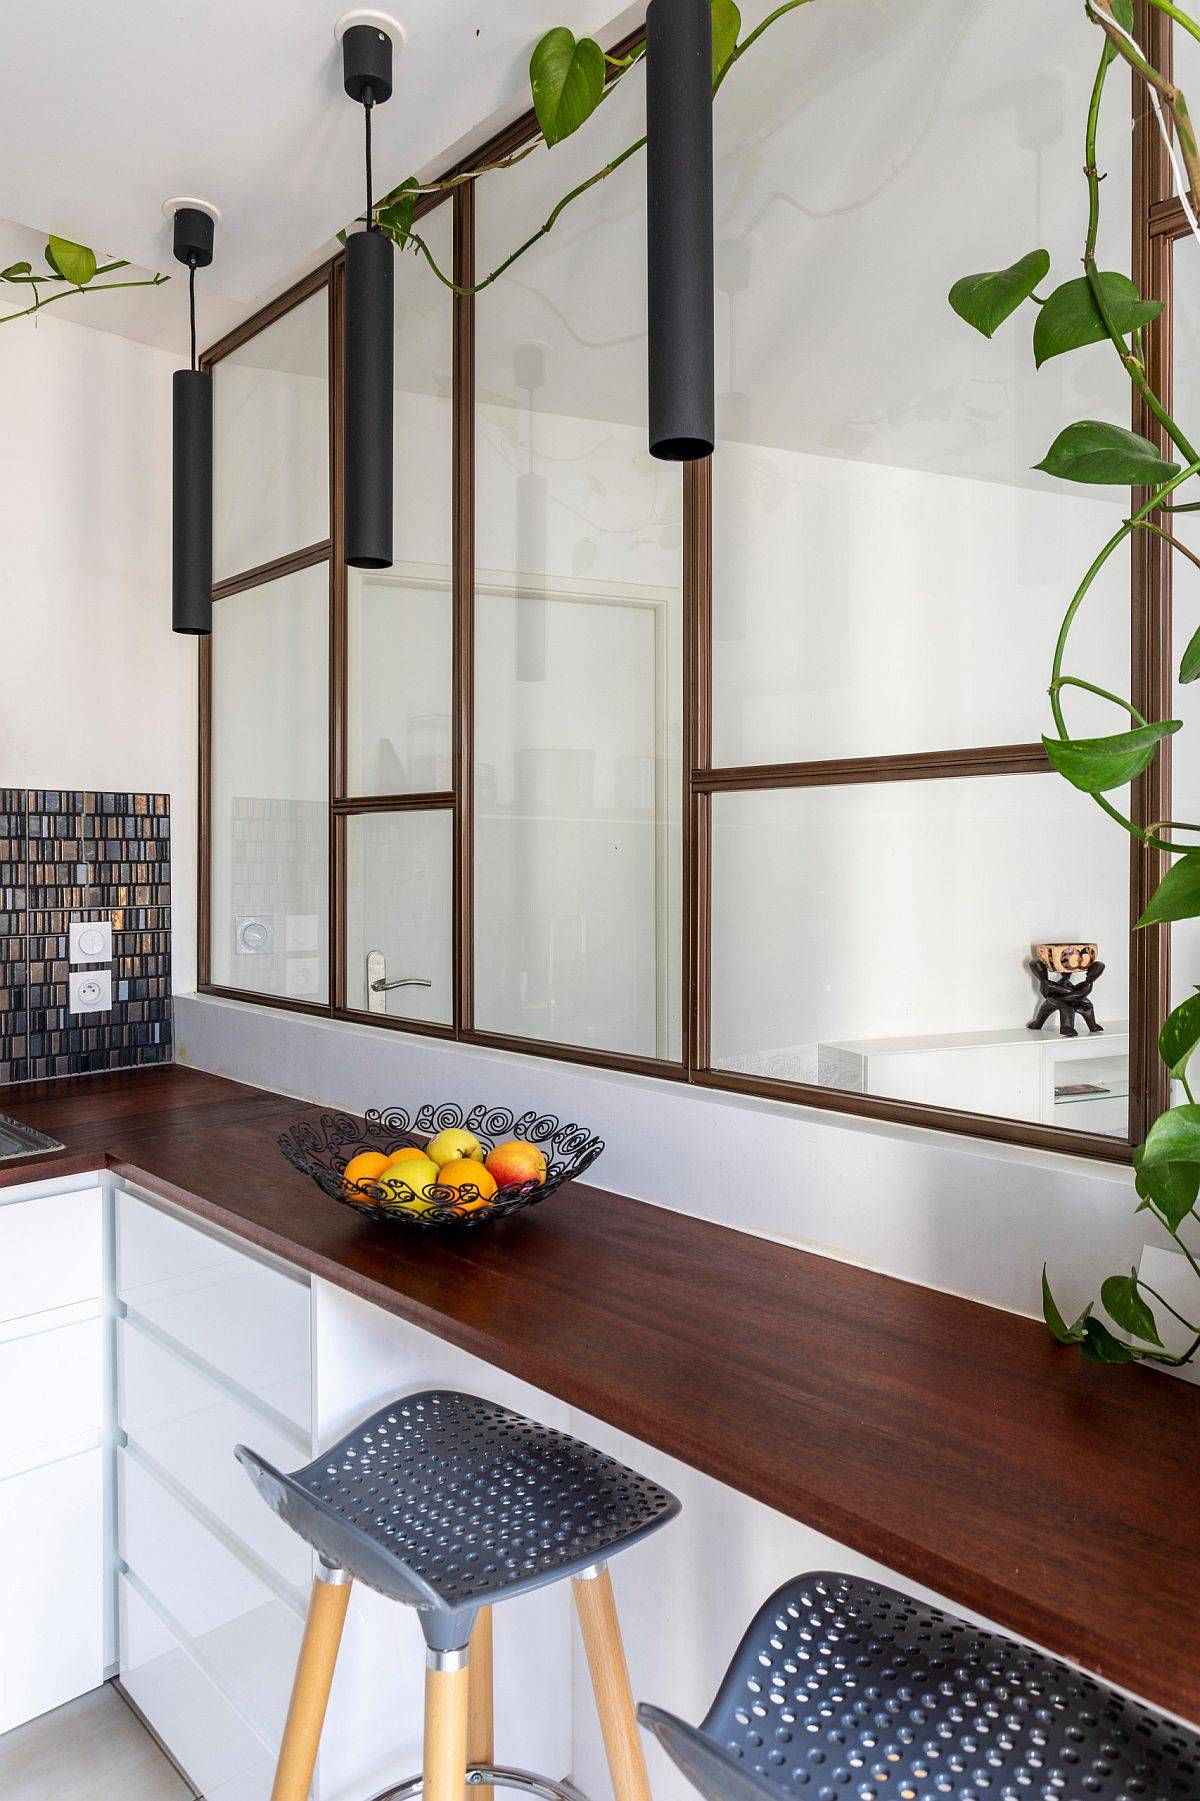 Creating-a-breakfast-station-inside-the-small-kitchen-with-a-view-of-the-living-and-dining-area-25524